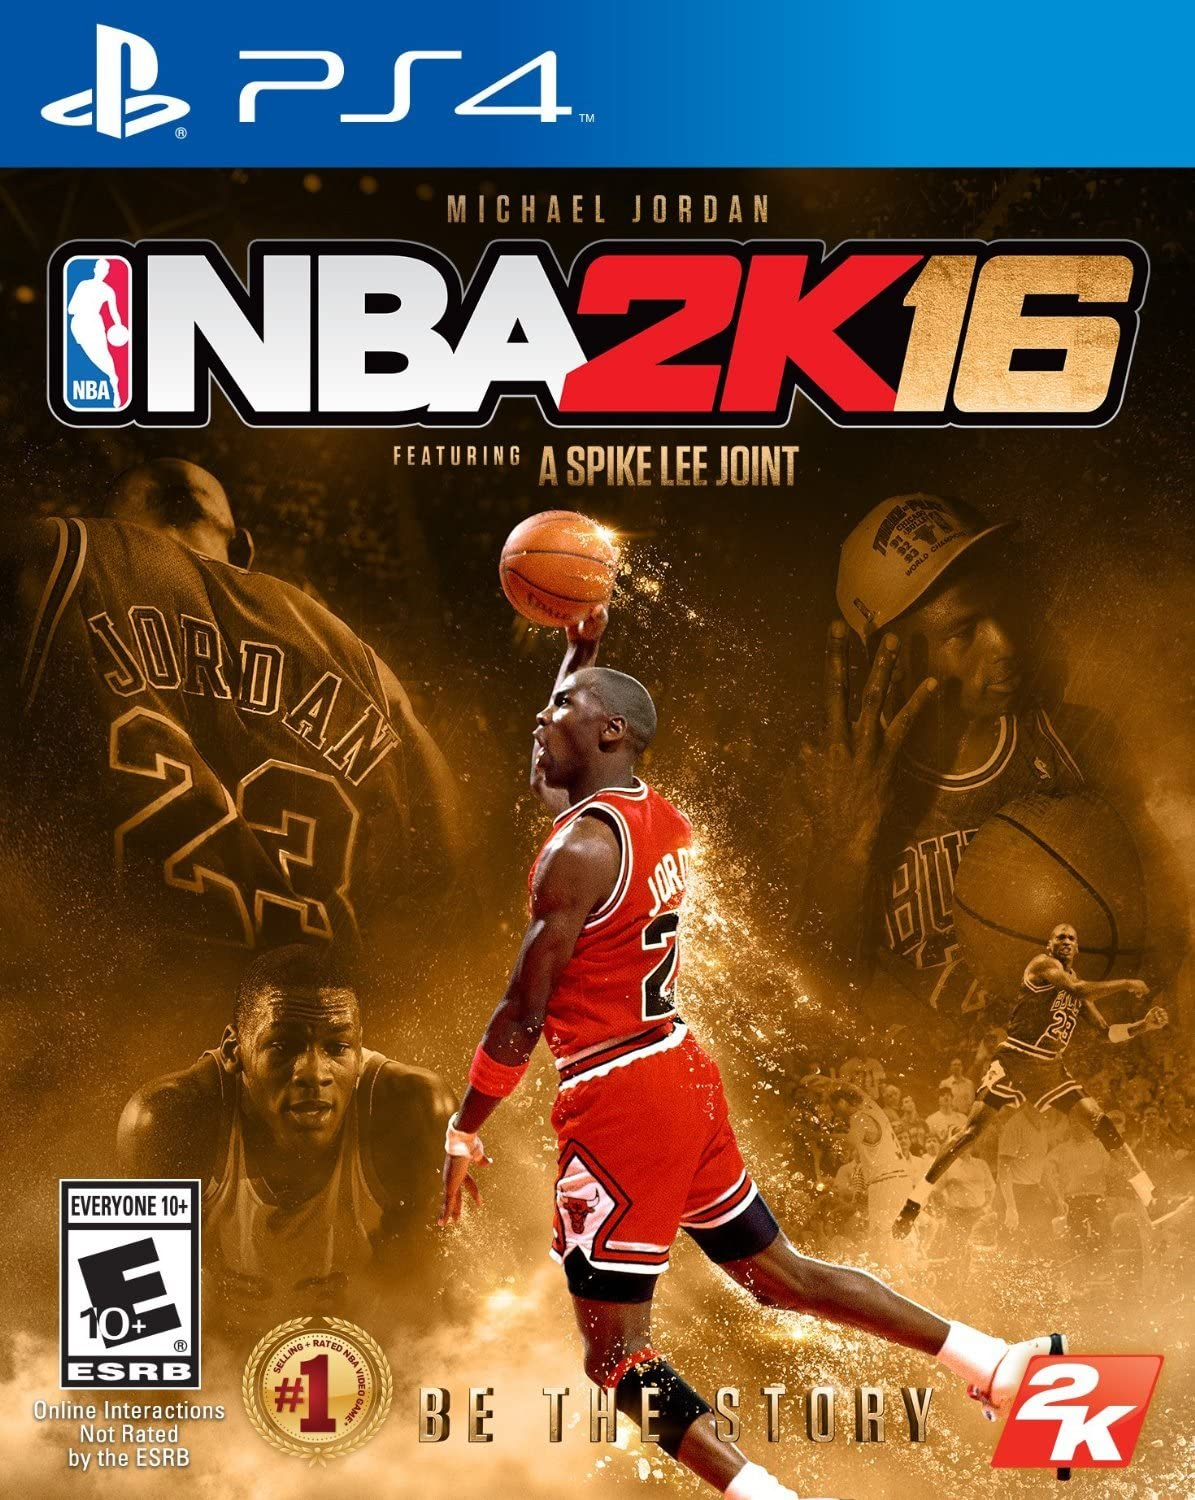 1497b9f77037 Amazon.com  NBA 2K16 - Michael Jordan Special Edition - PlayStation 4   Video Games